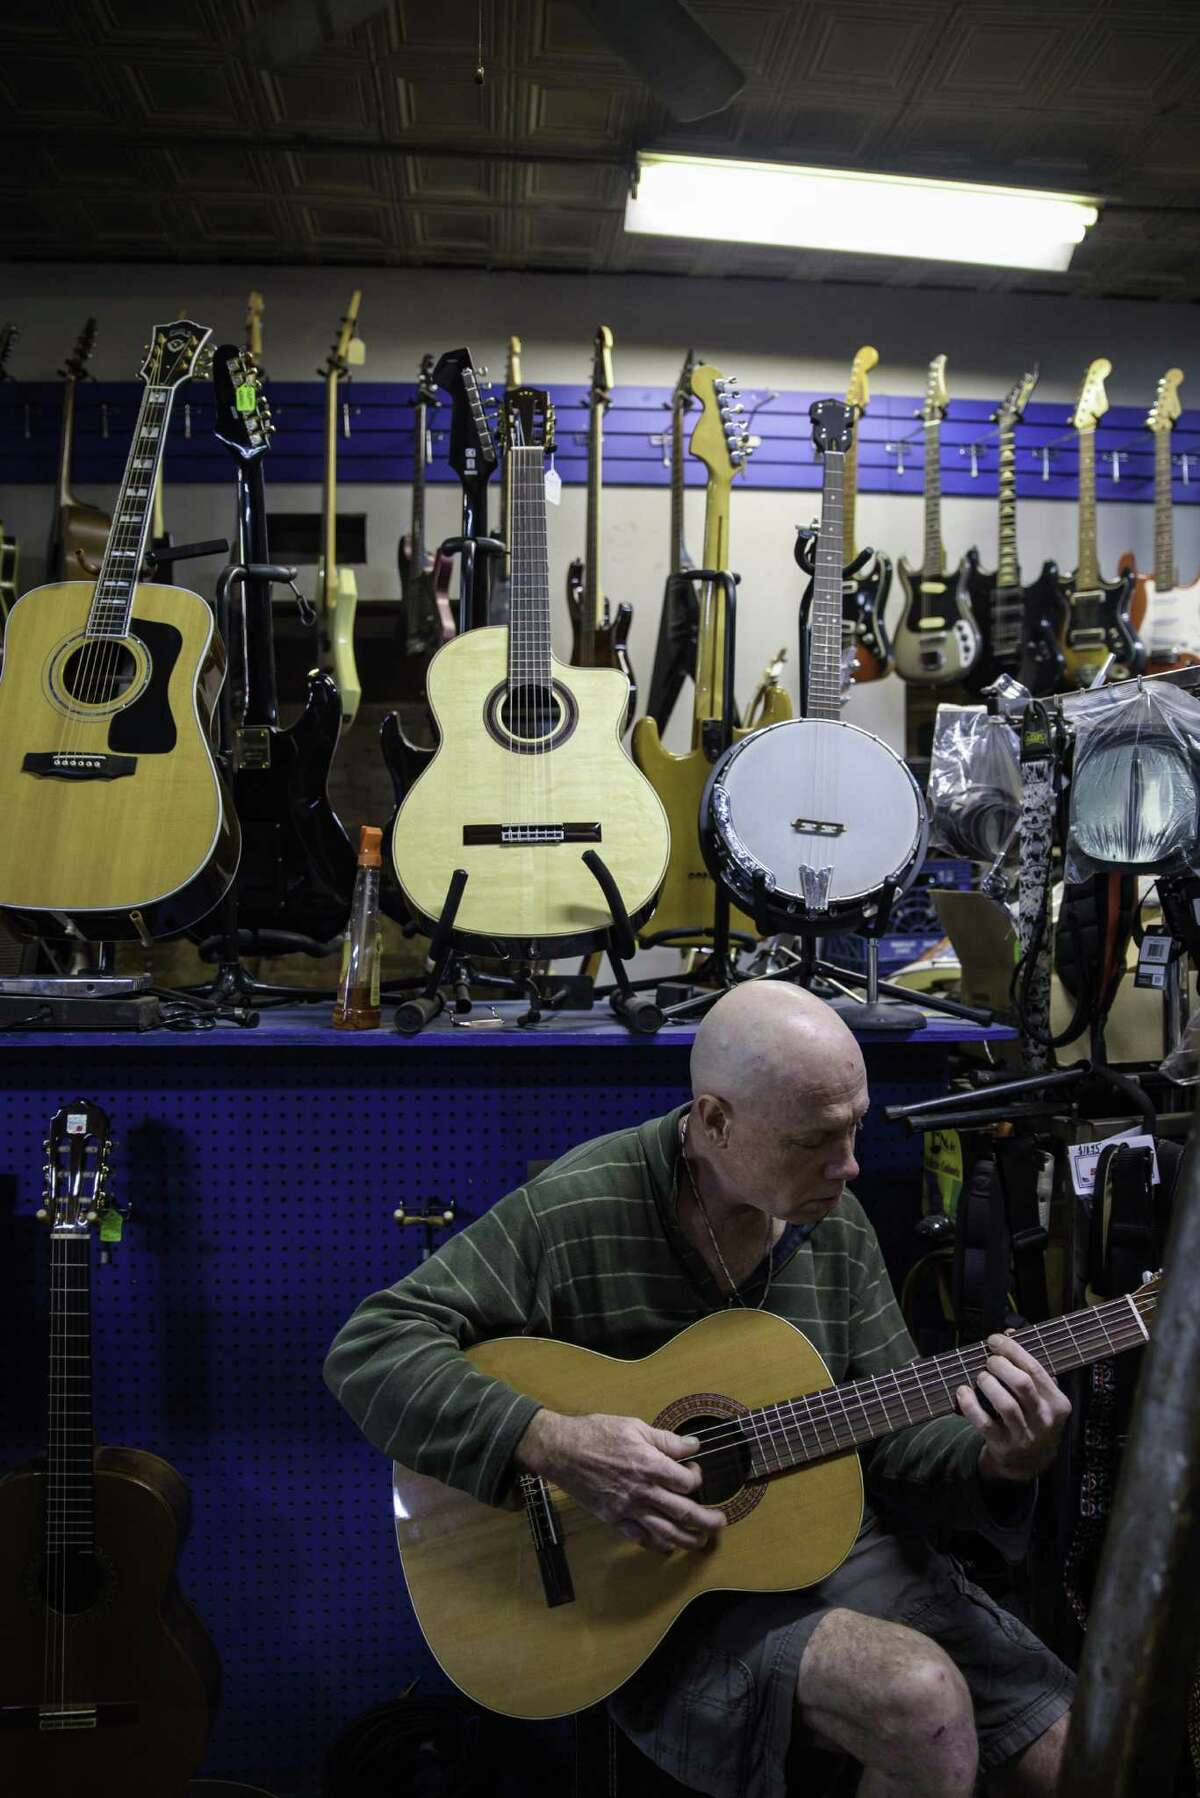 Alex Hussey, a regular customer, strums a guitar amid the vast selection at the Music Guild in Danbury.